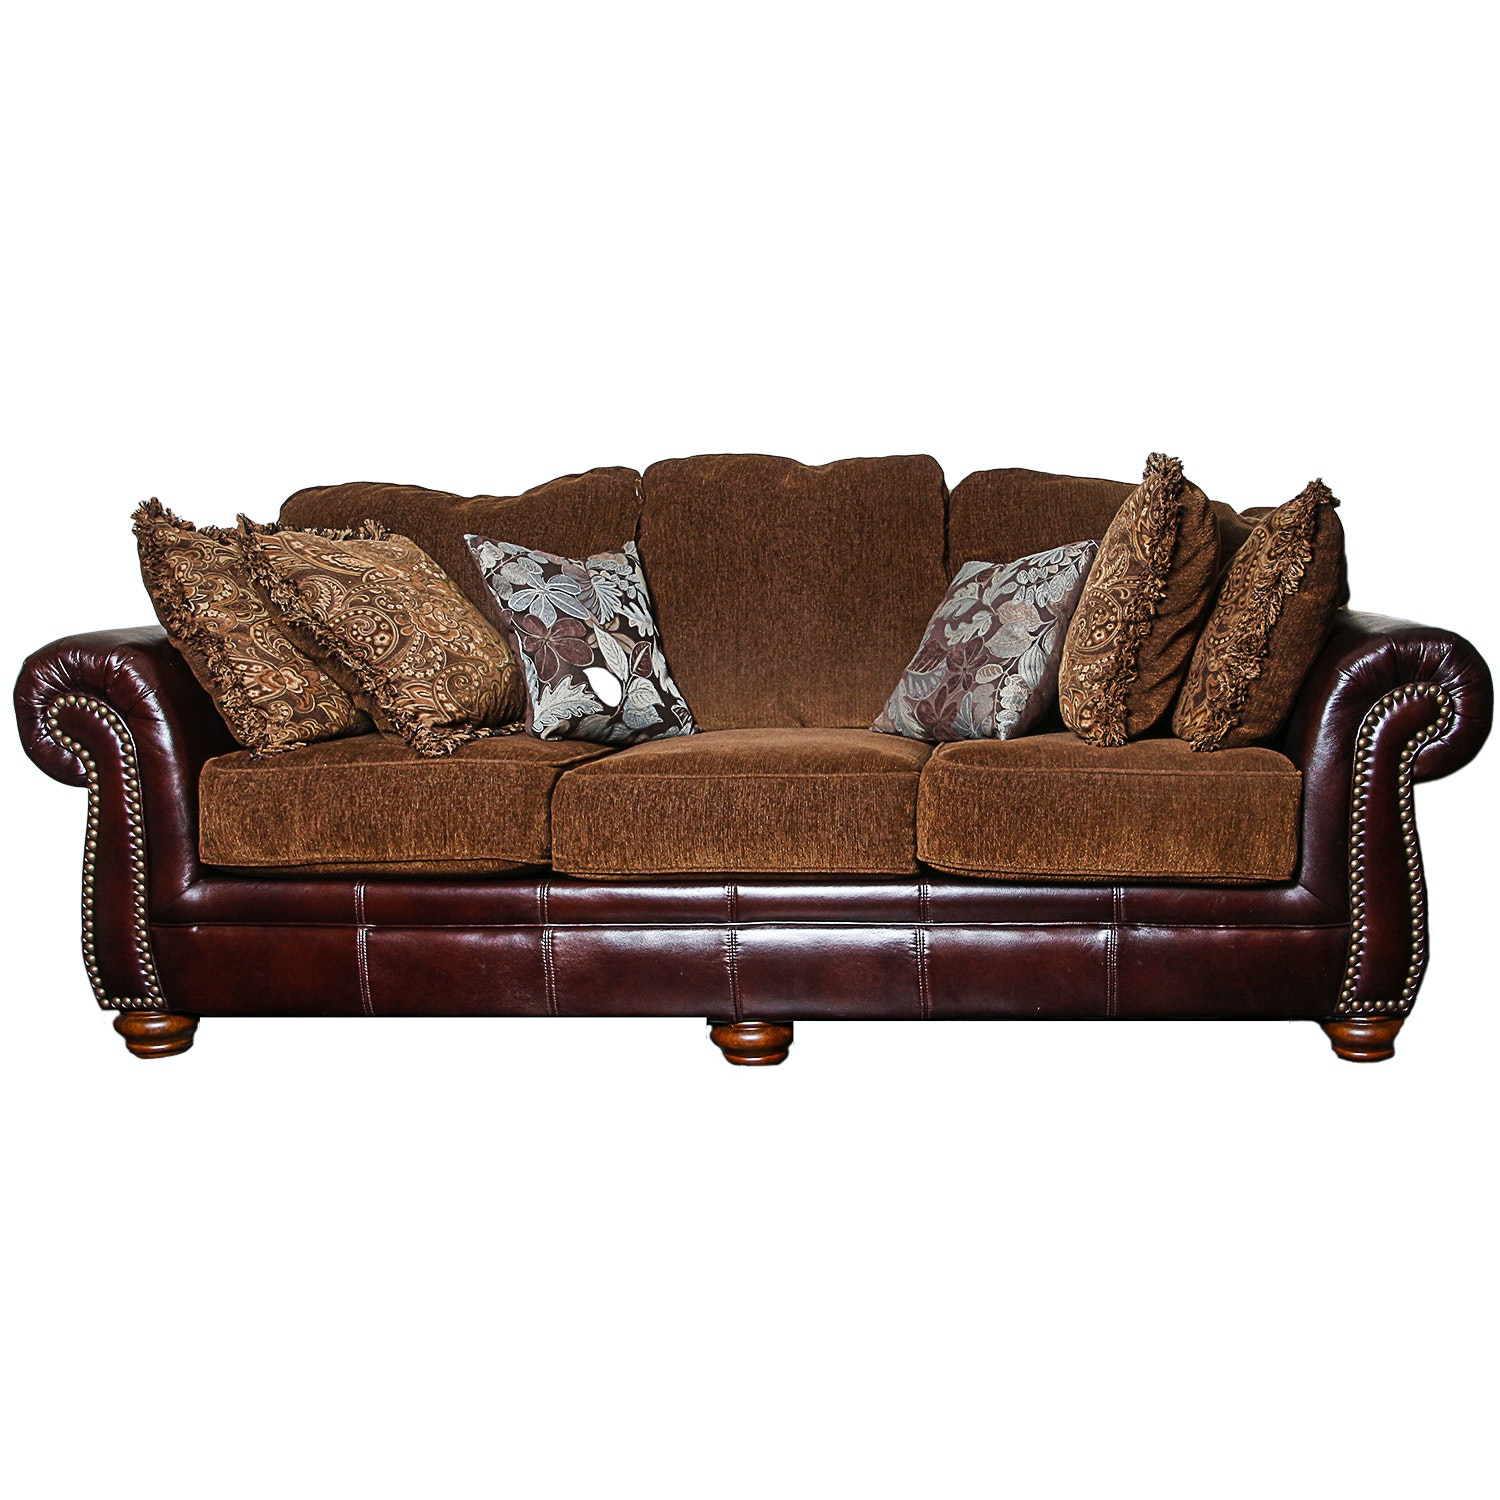 Burgundy Faux Leather Sofa With Brown Upholstered Cushions ...